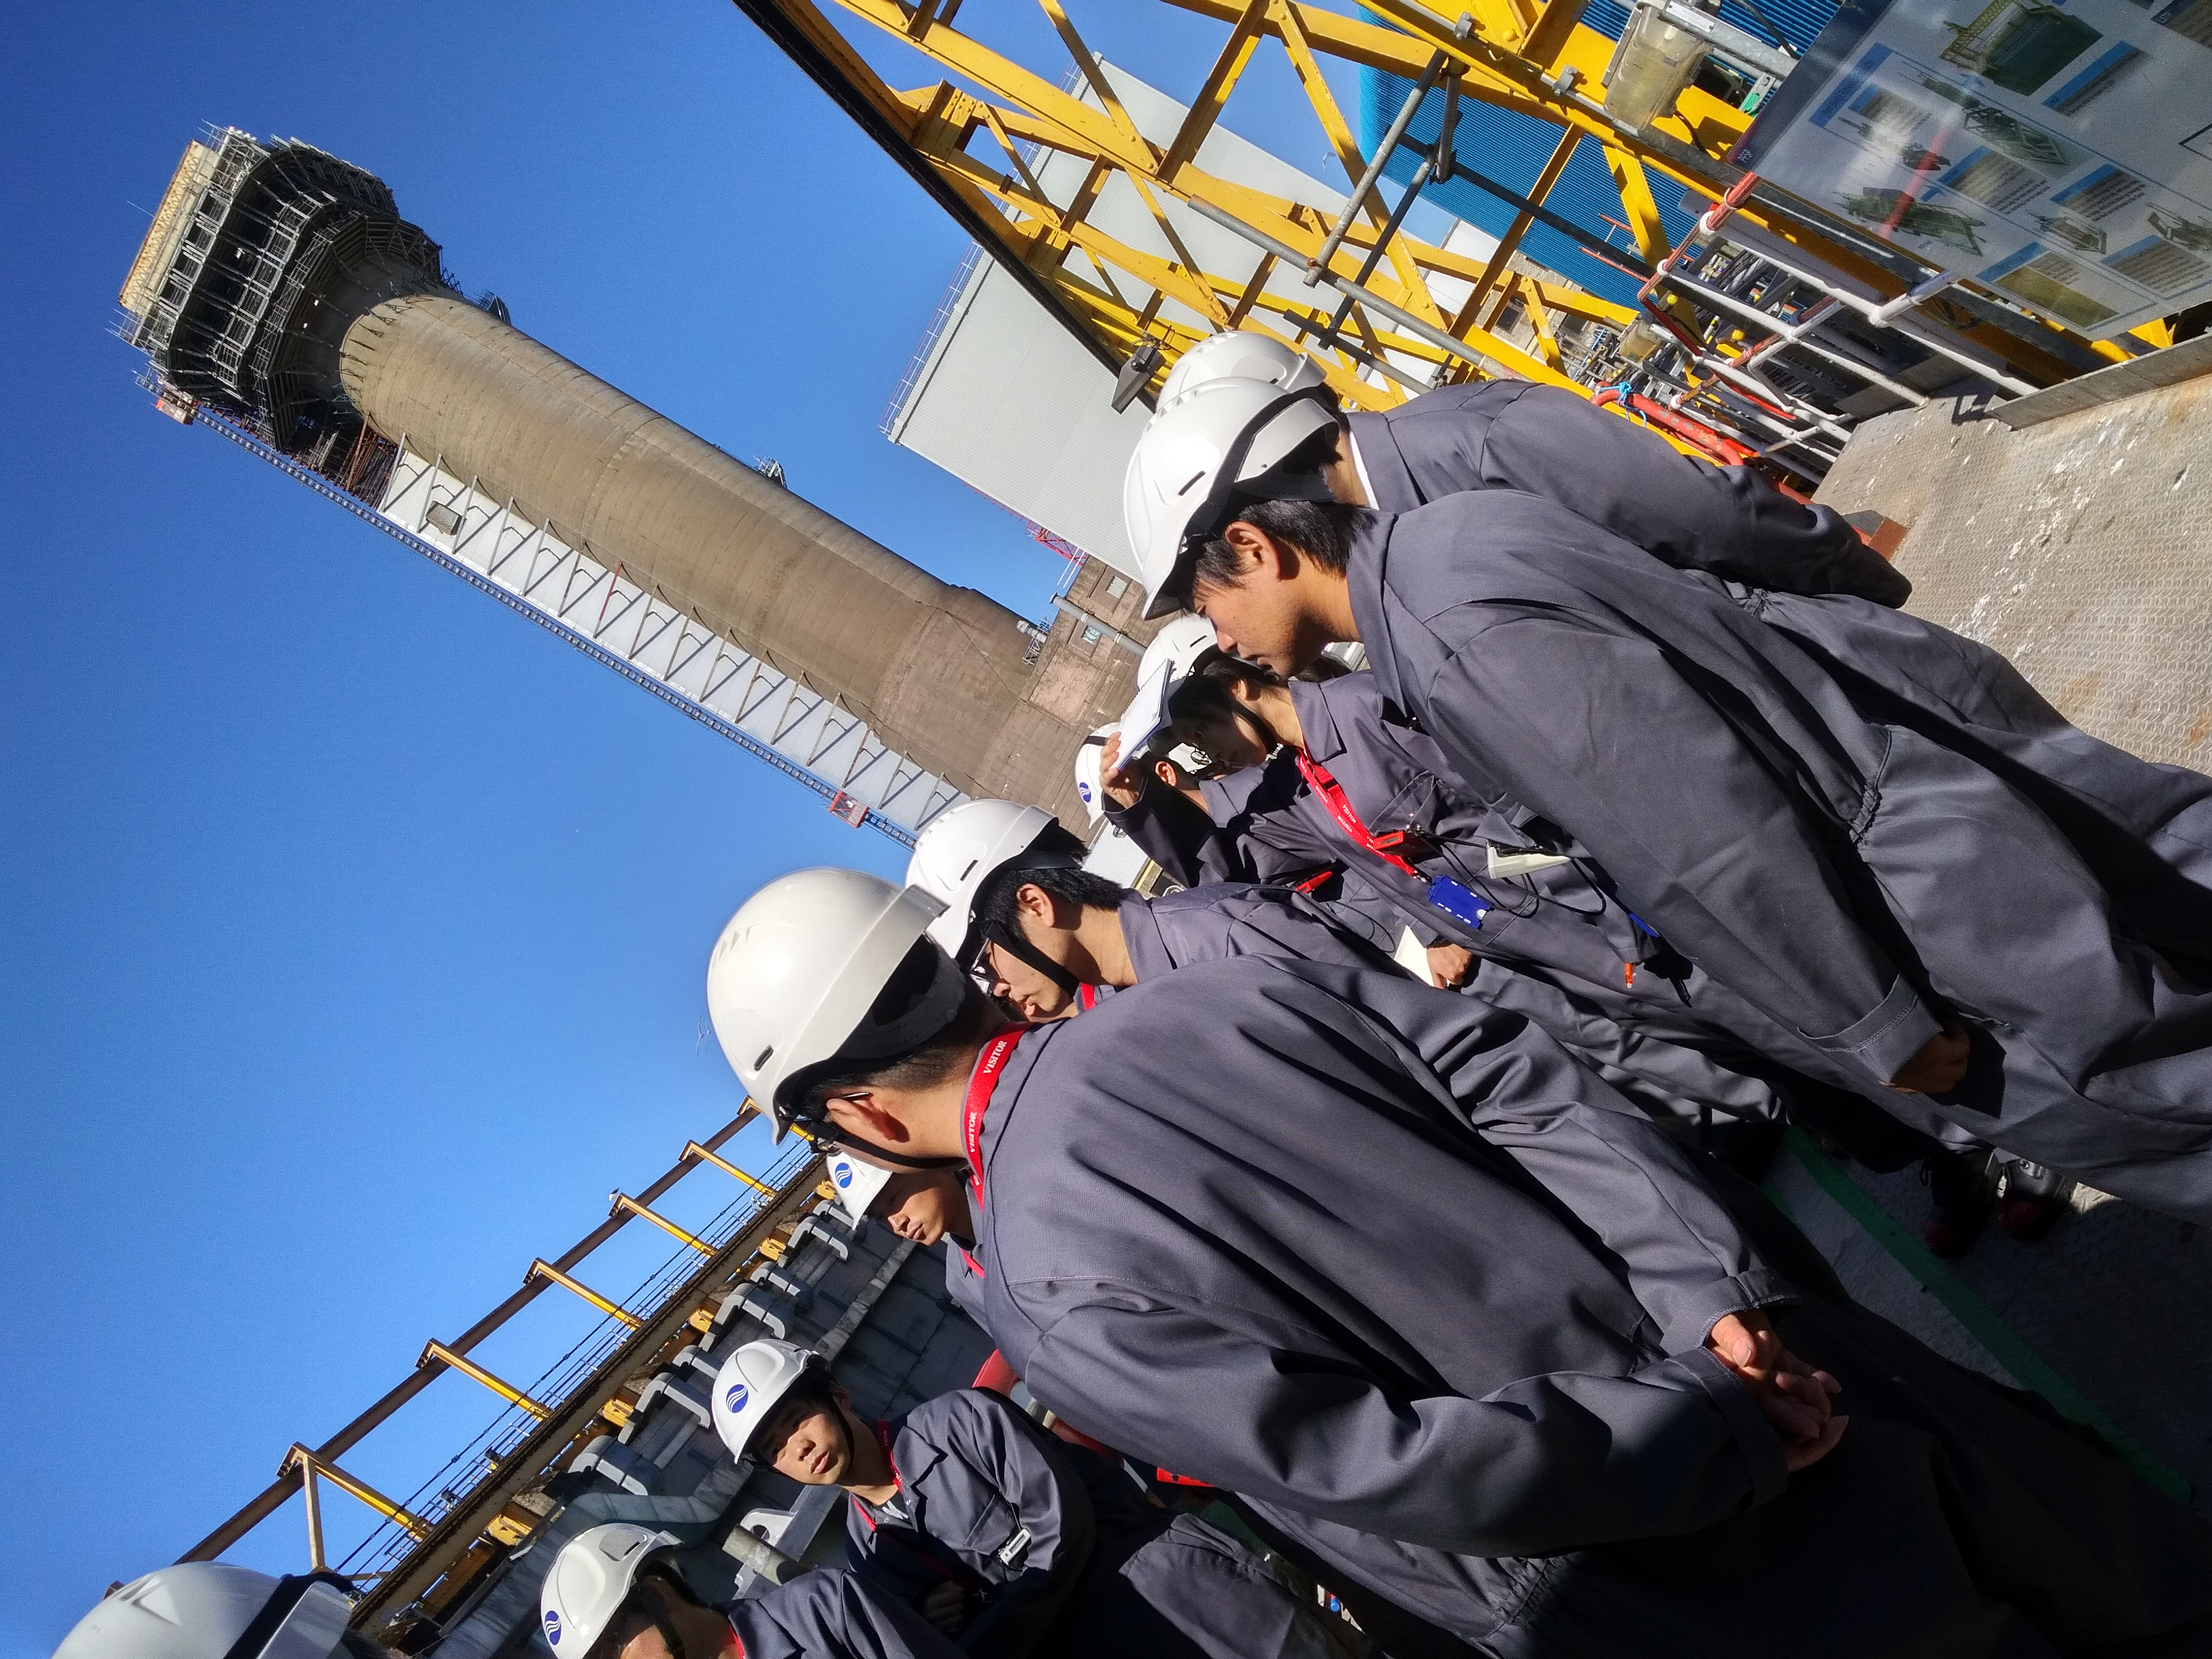 Tokyo University students visit one of Sellafield's legacy facilities